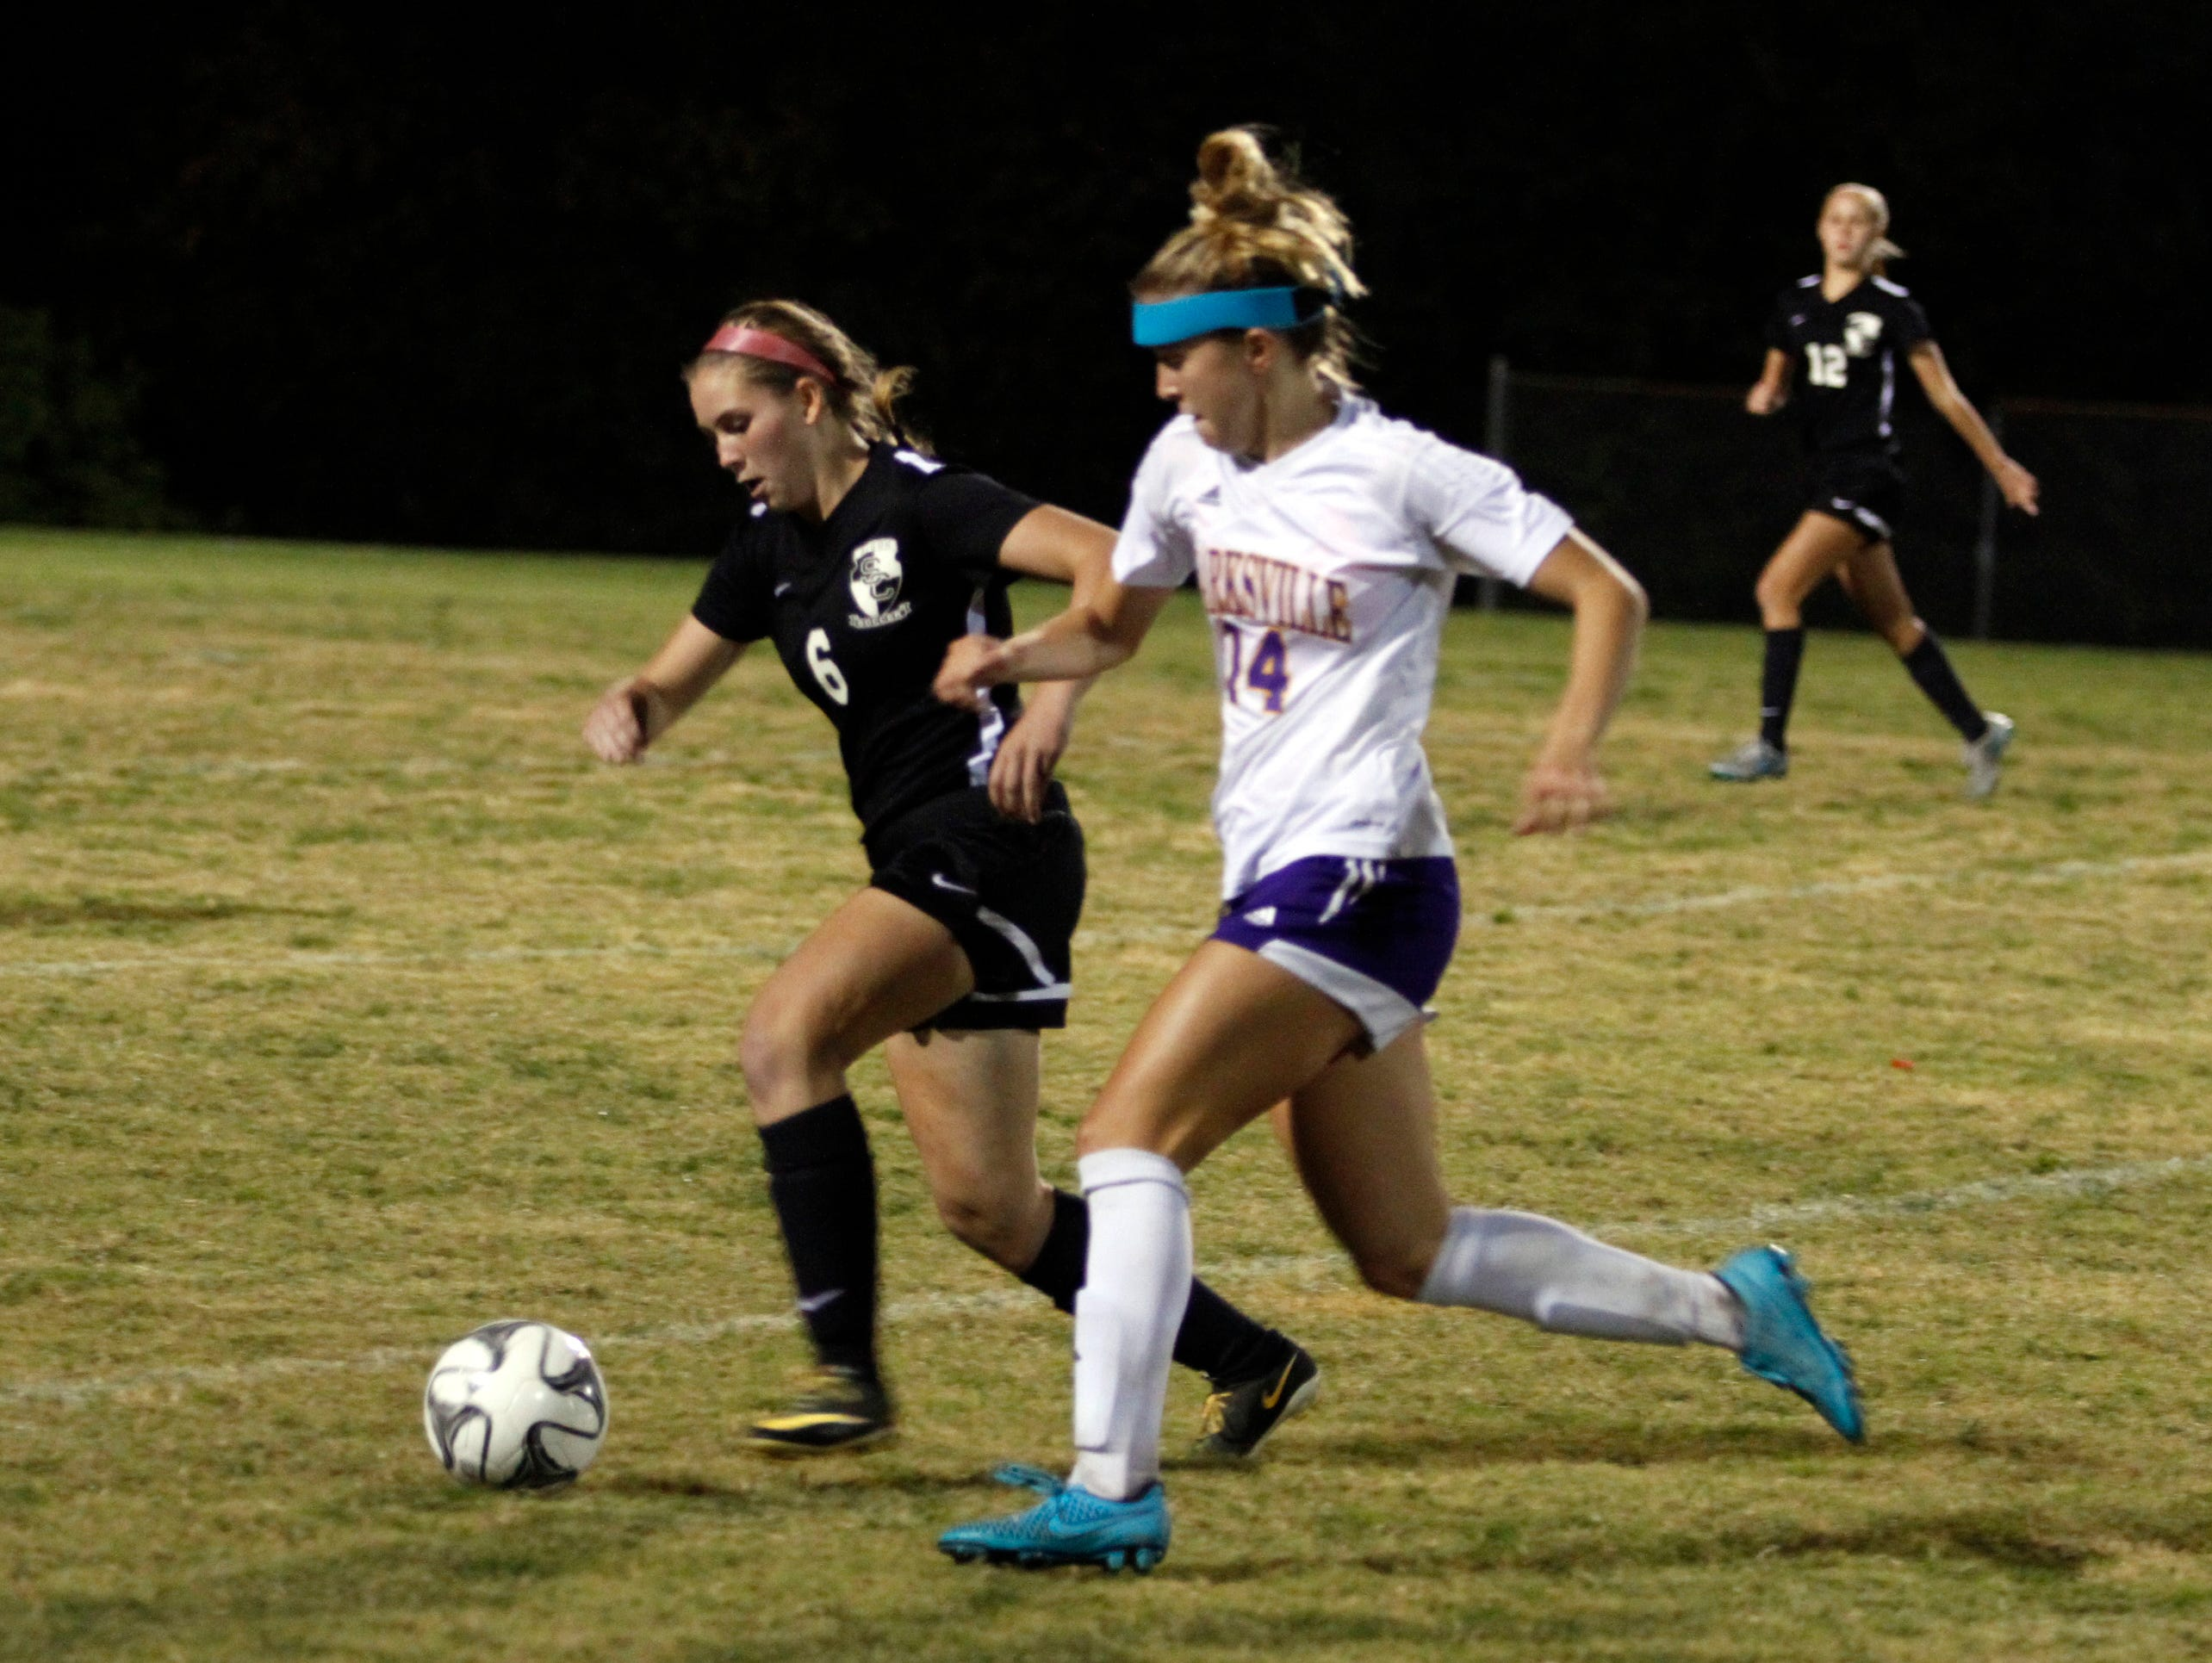 Clarksville High's Salera Jordan (14) tries to gain control of the ball from the midfield during their Region 5 soccer tournament semifinal Tuesday night at CHS.